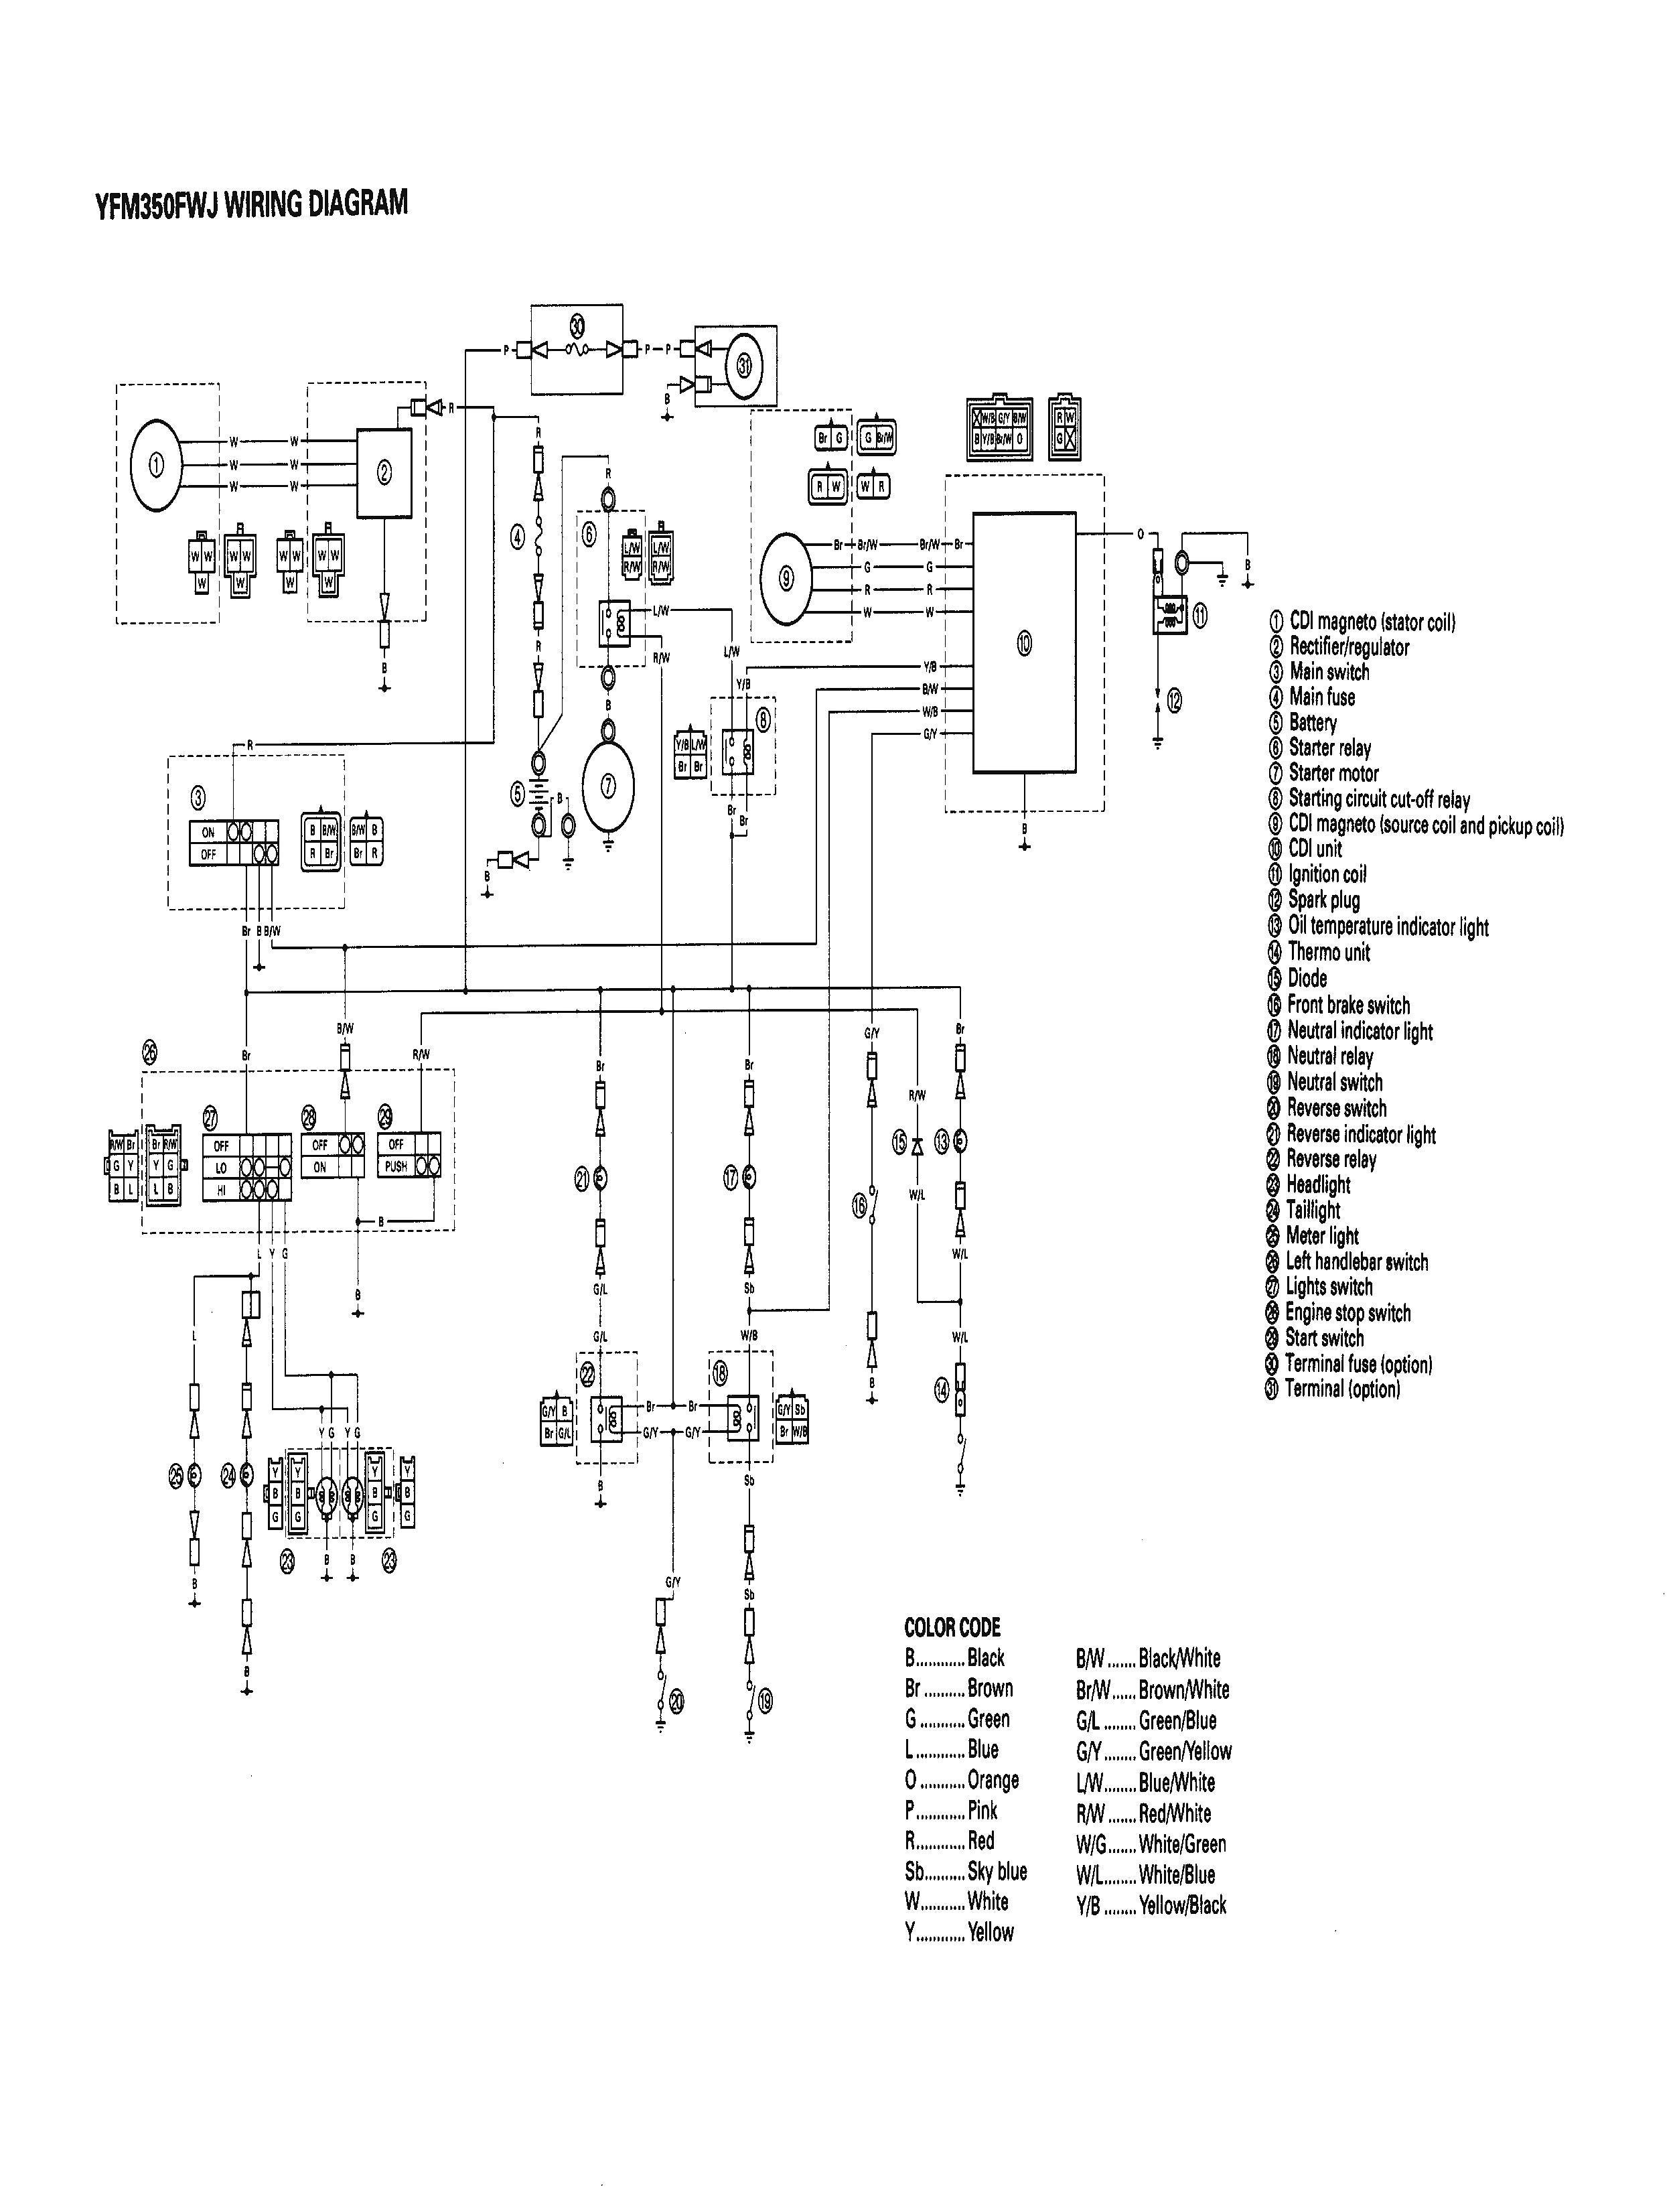 2002 Yamaha 660 Grizzly Wiring Diagram In Pdf Wiring Diagram Schema Write Track Write Track Atmosphereconcept It